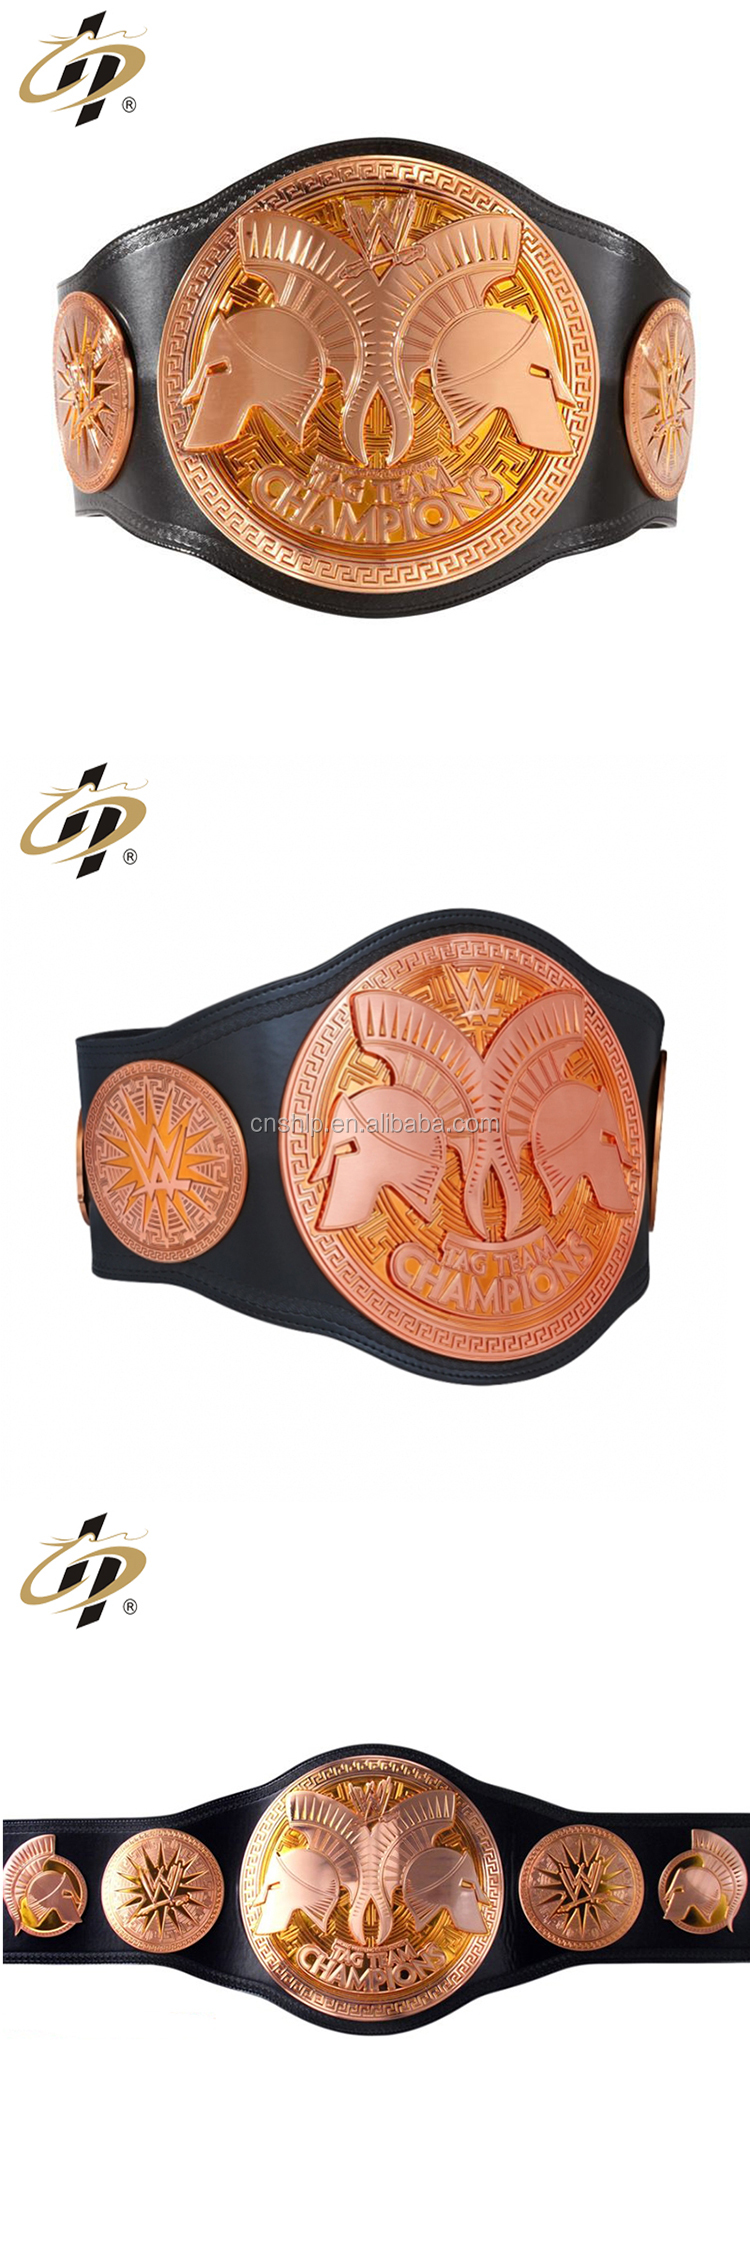 Promotional custom your own high quality championship metal belt